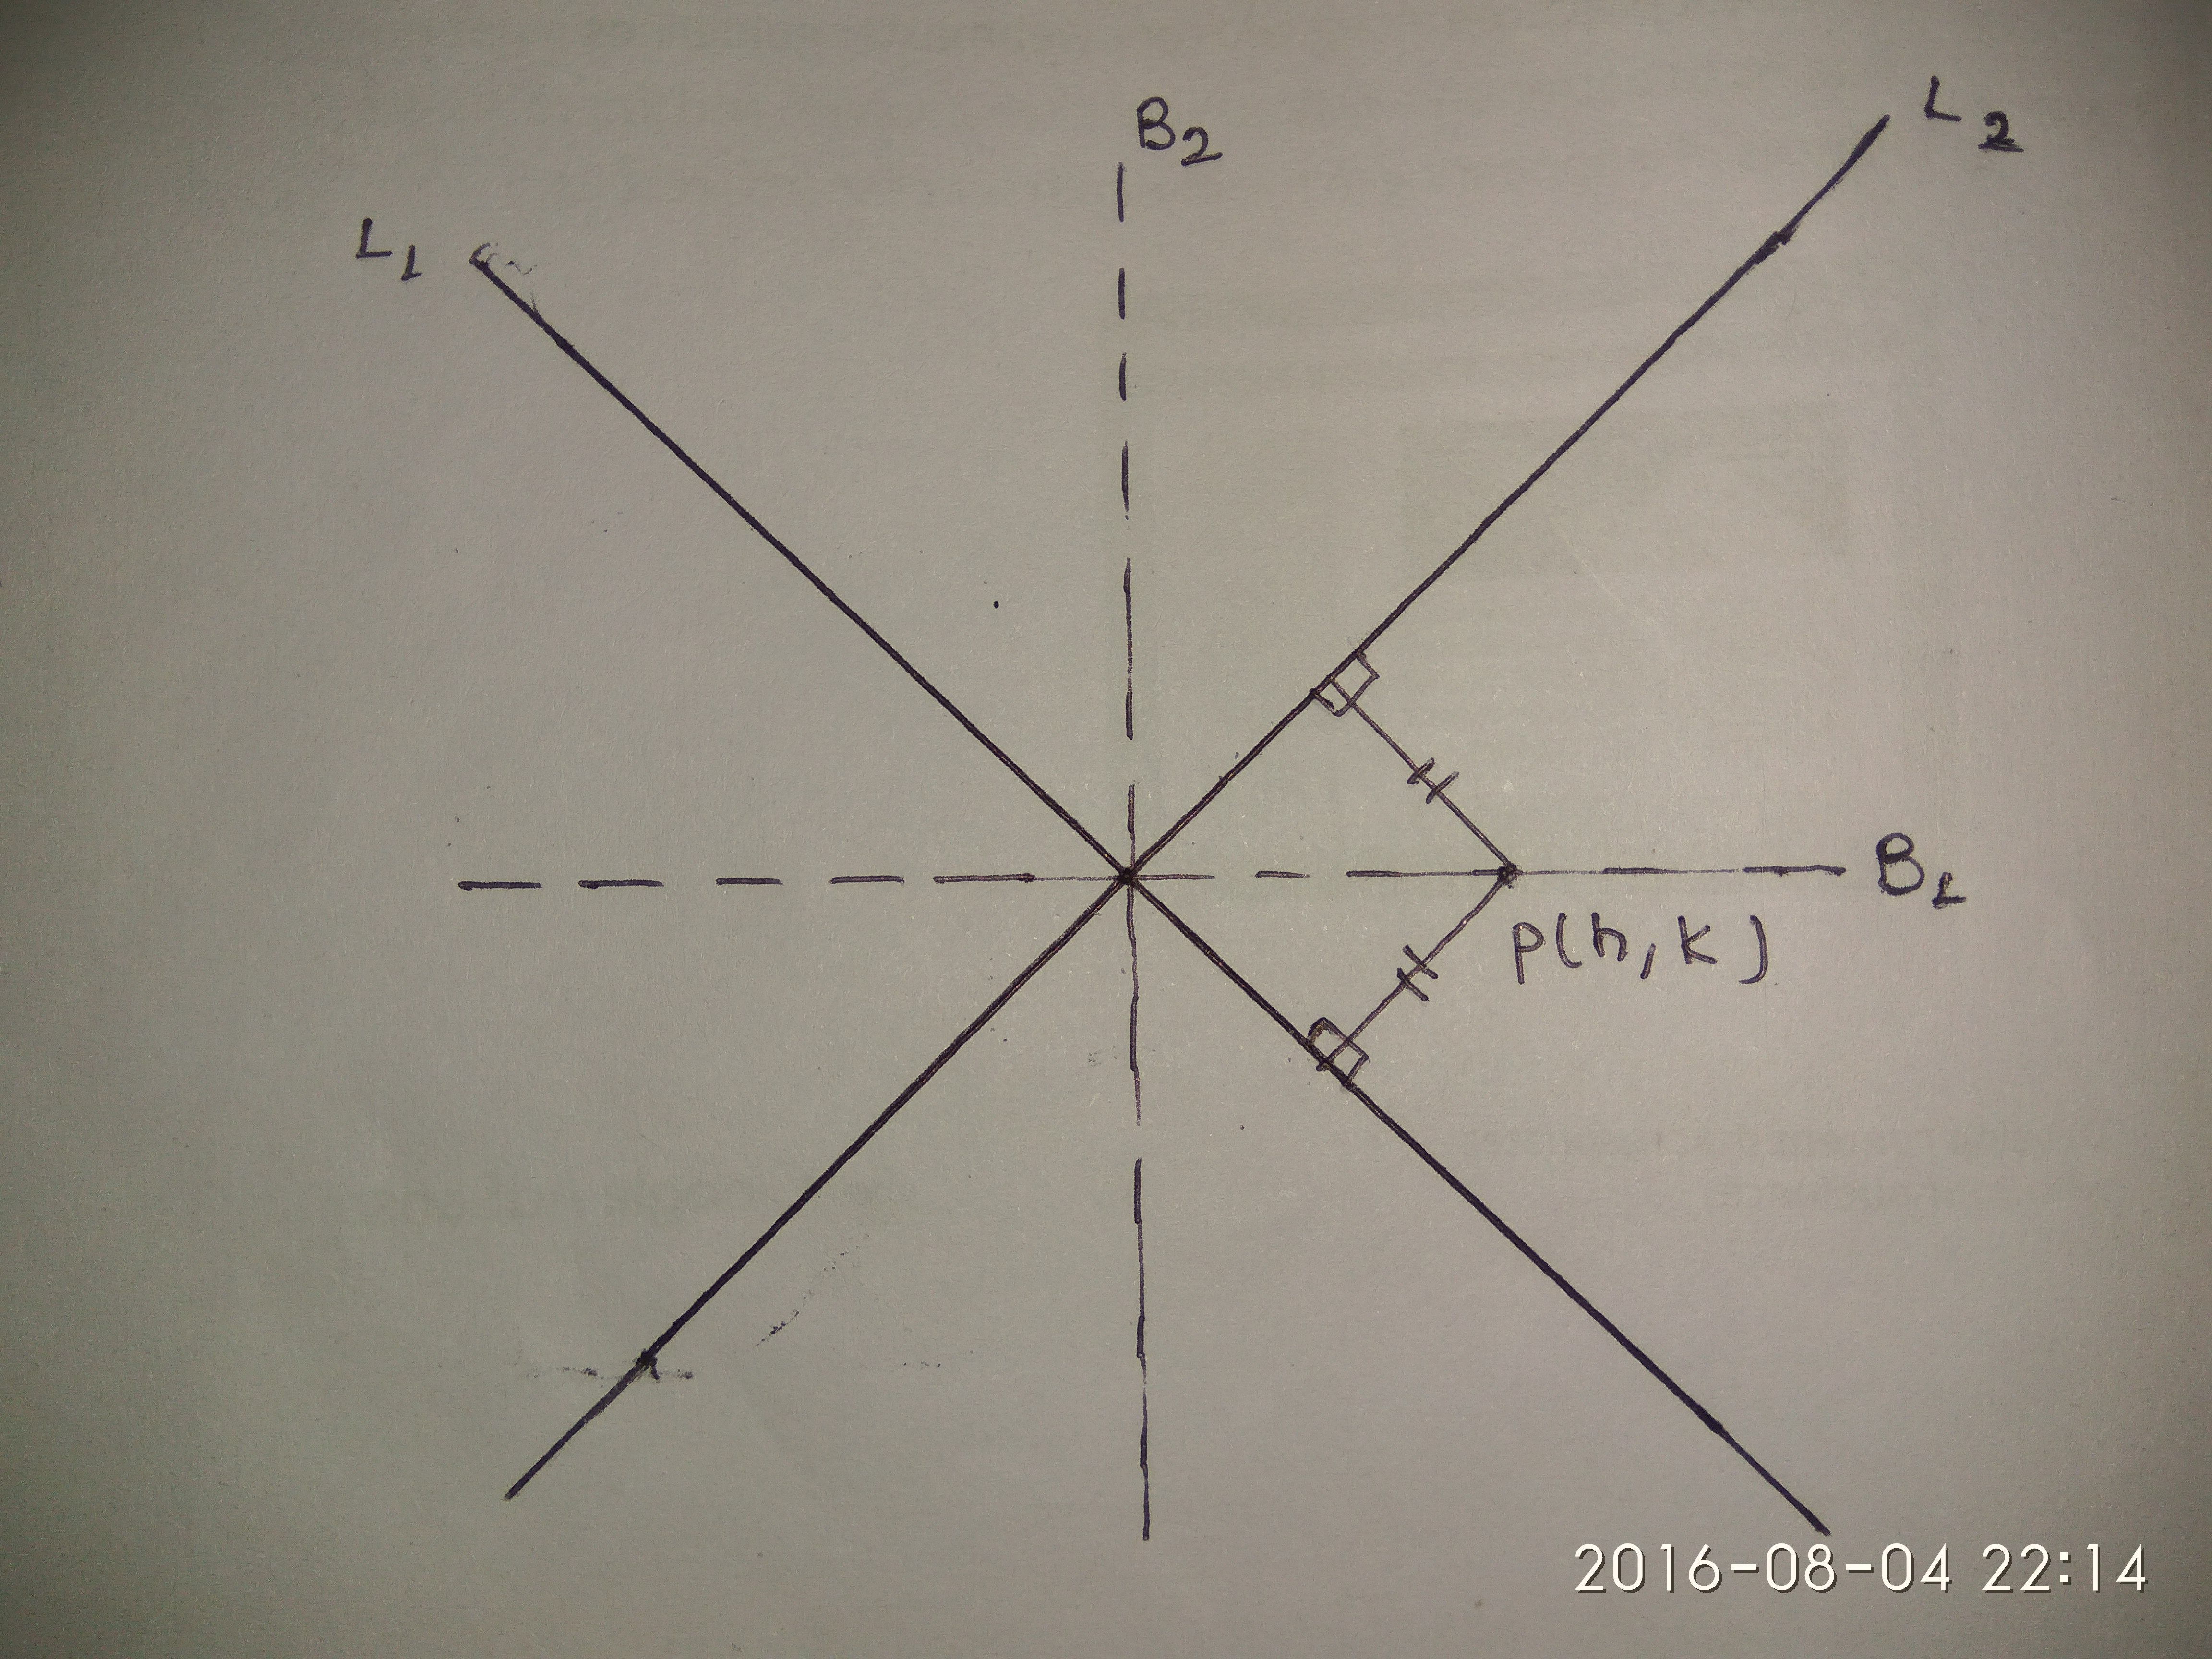 Bisectors of the angles between two lines